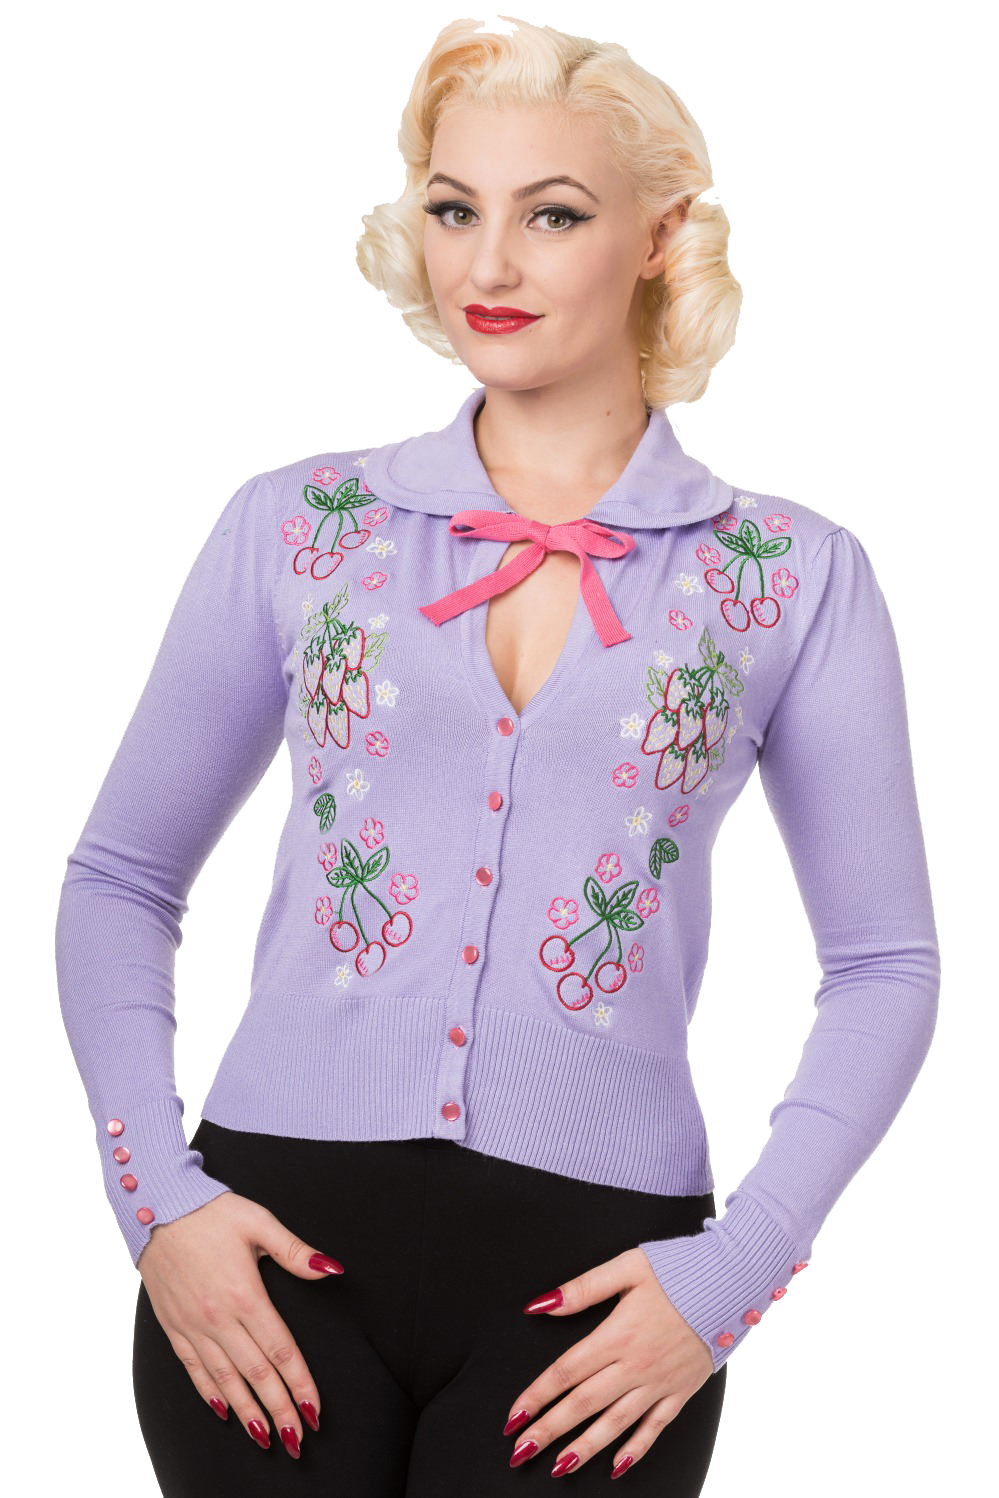 Banned Blue Dawn Lilac Strawberries Cherries Cardigan